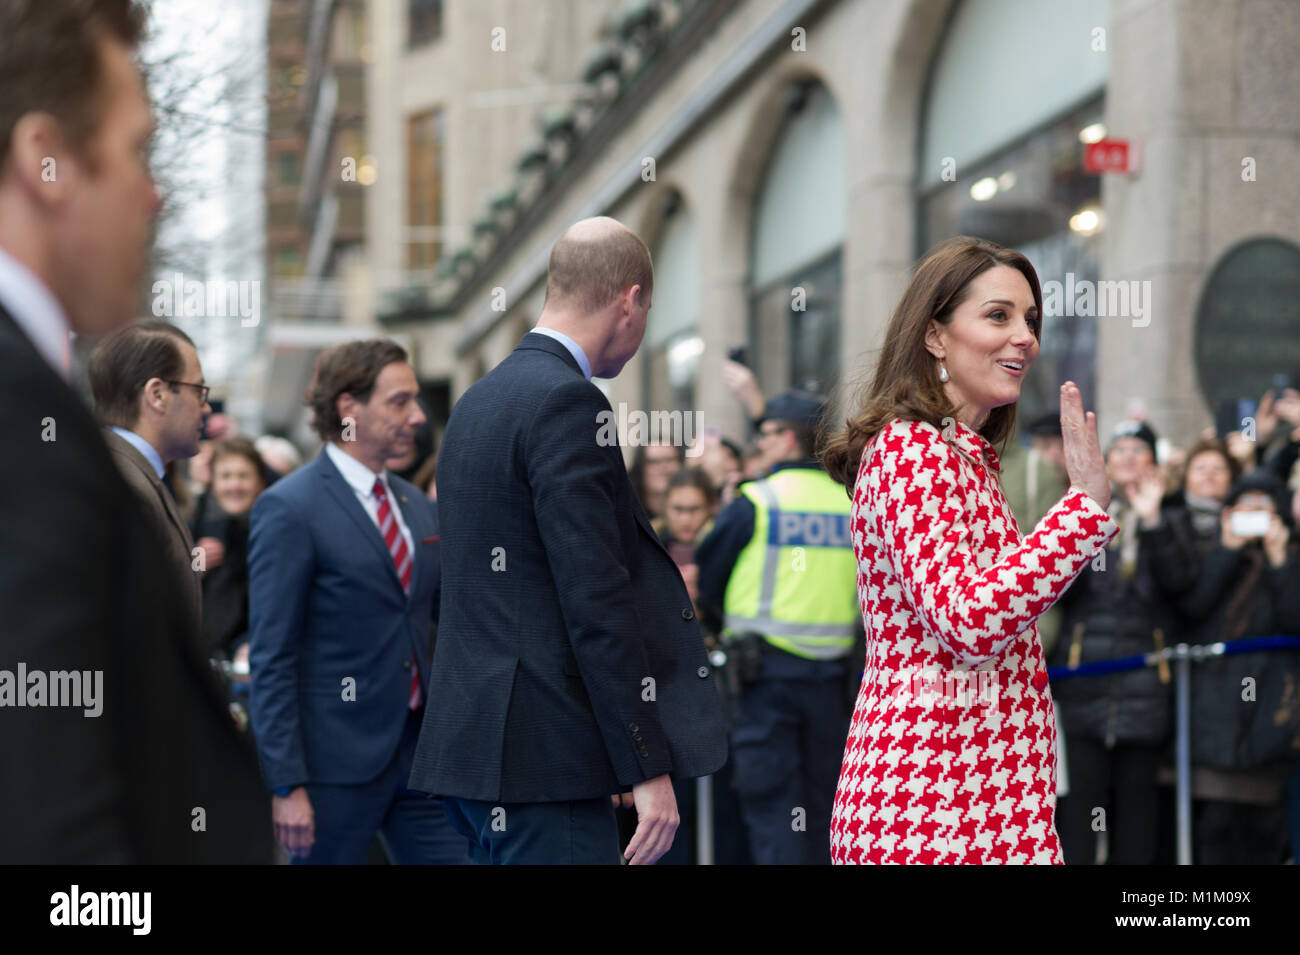 Stockholm, Sweden, 31th January, 2018. The Duke and Duchess of Cambridge's Tour of Sweden 30th-31th January,2018.Visiting - Stock Image